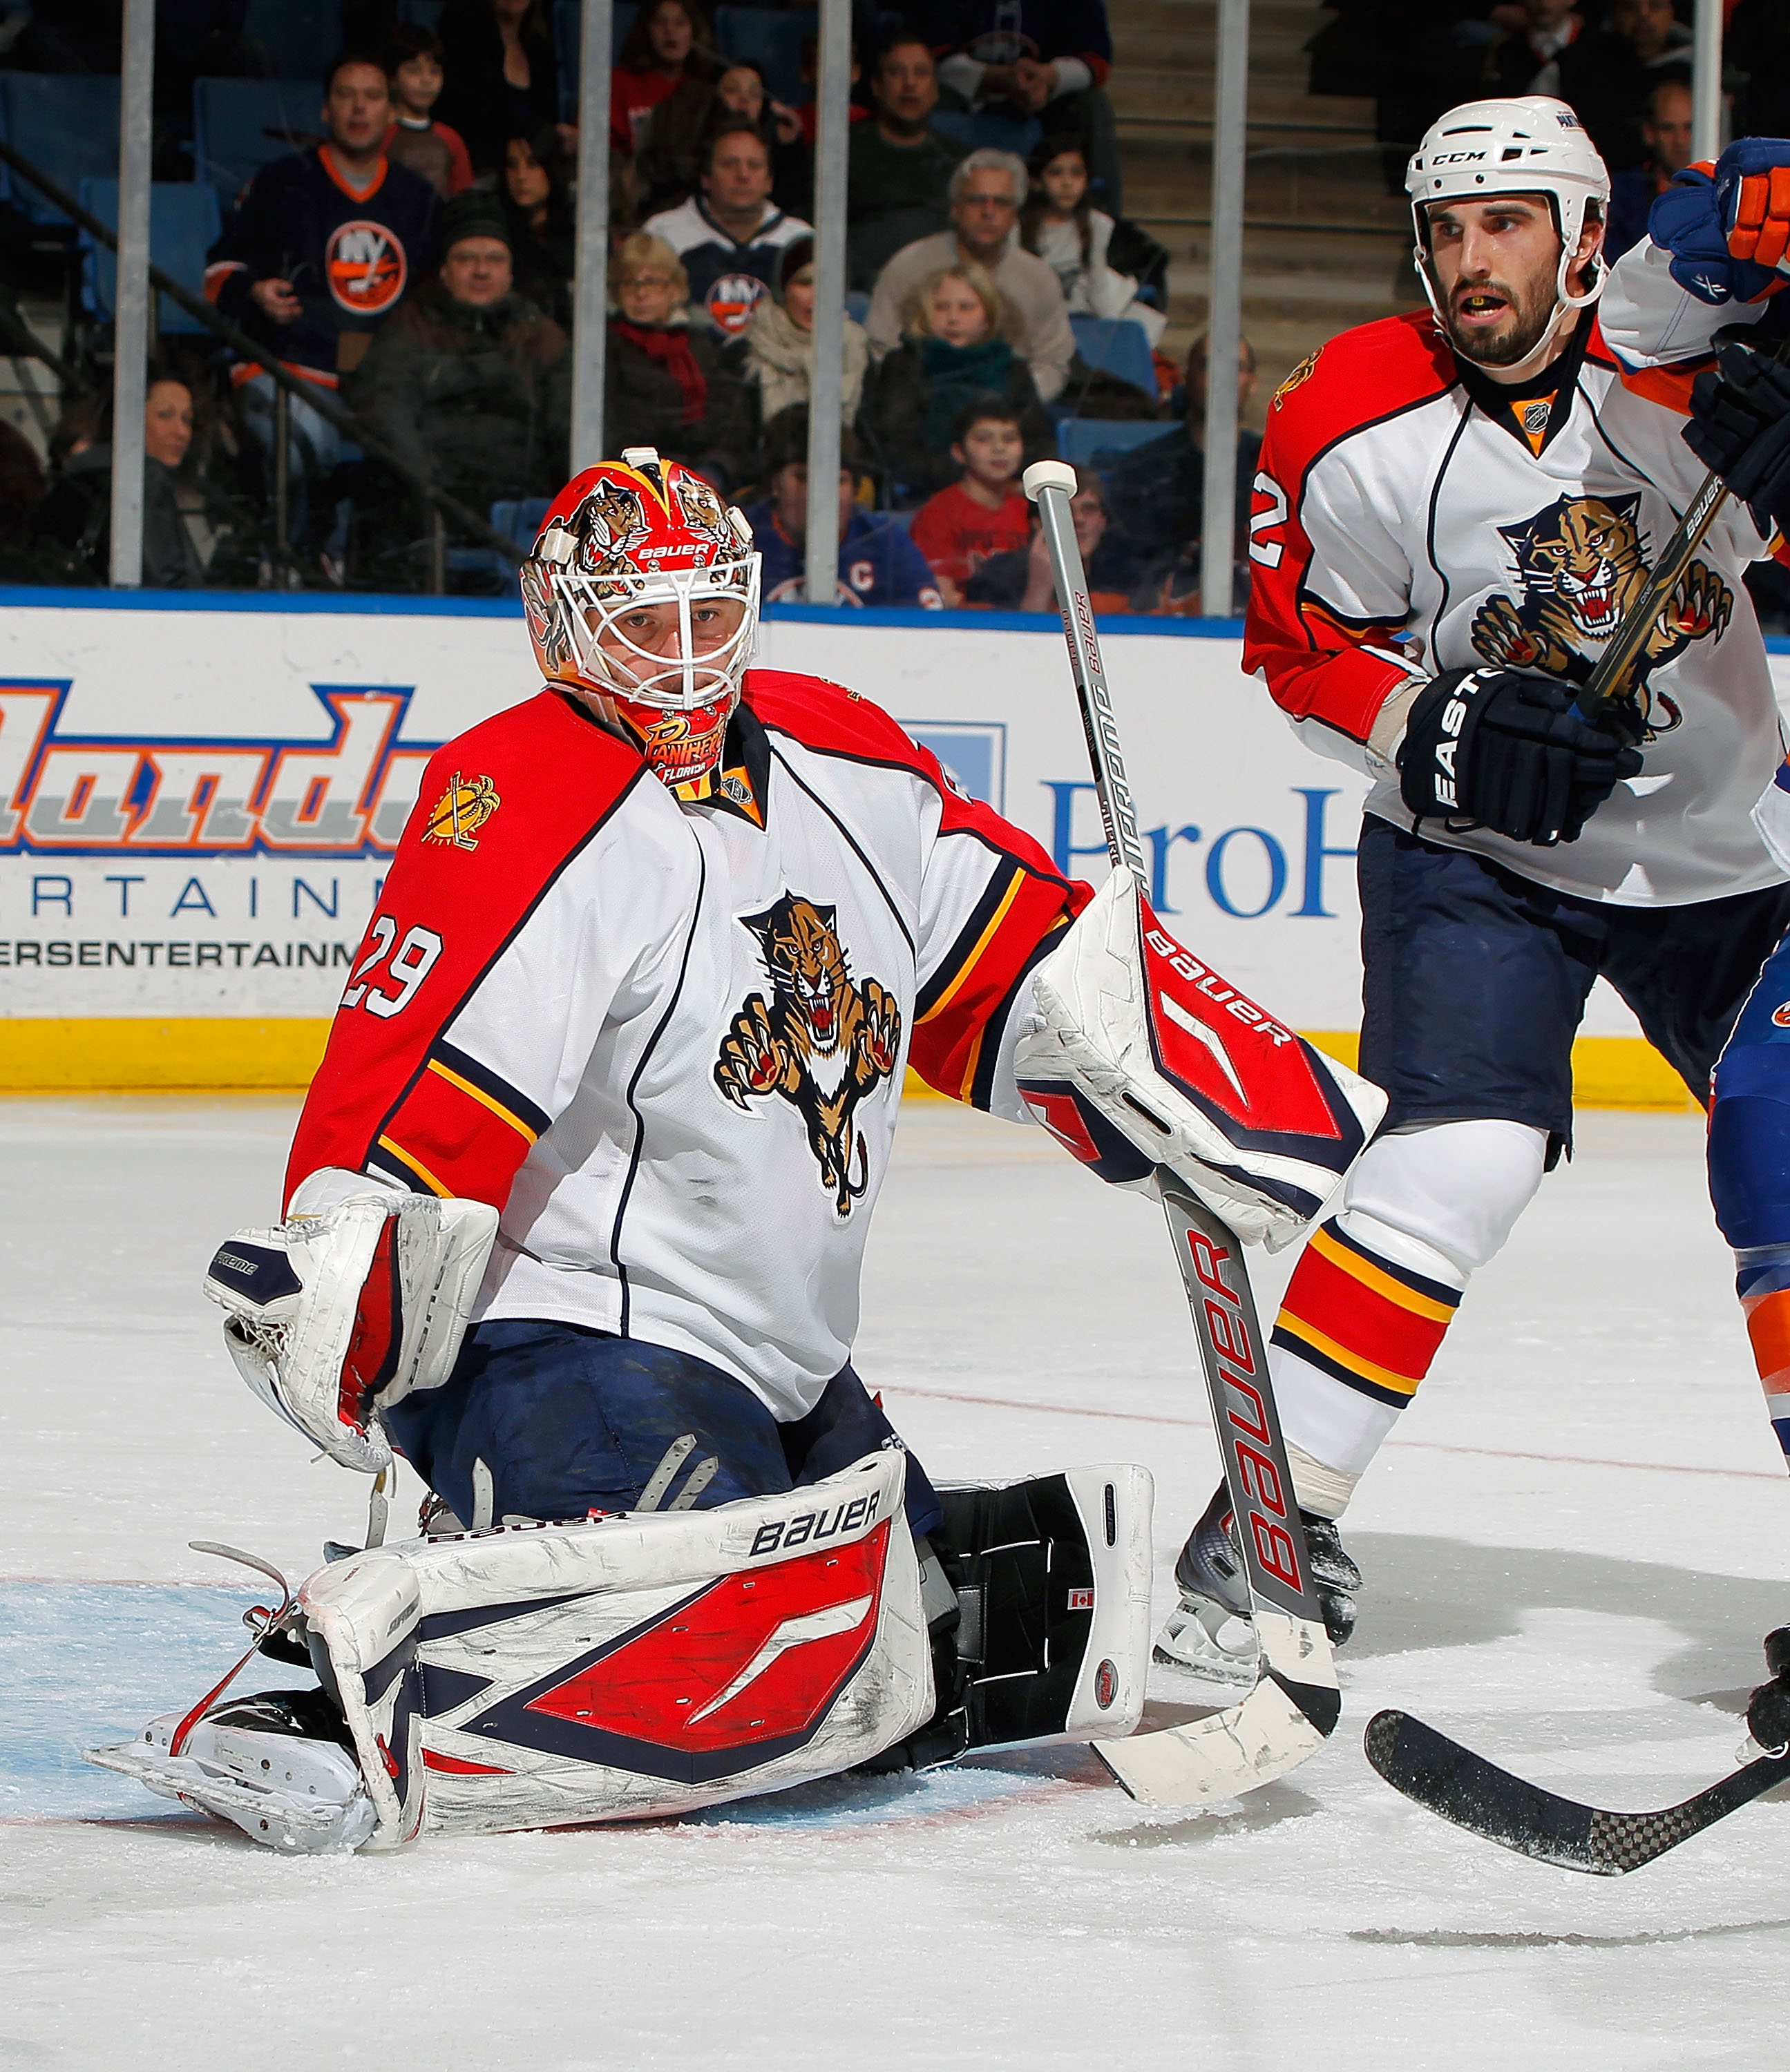 UNIONDALE, NY - FEBRUARY 21:  Goalie Tomas Vokoun #29 of the Florida Panthers makes a save during an NHL hockey game against the New York Islanders at the Nassau Coliseum on February 21, 2011 in Uniondale, New York.  (Photo by Paul Bereswill/Getty Images)